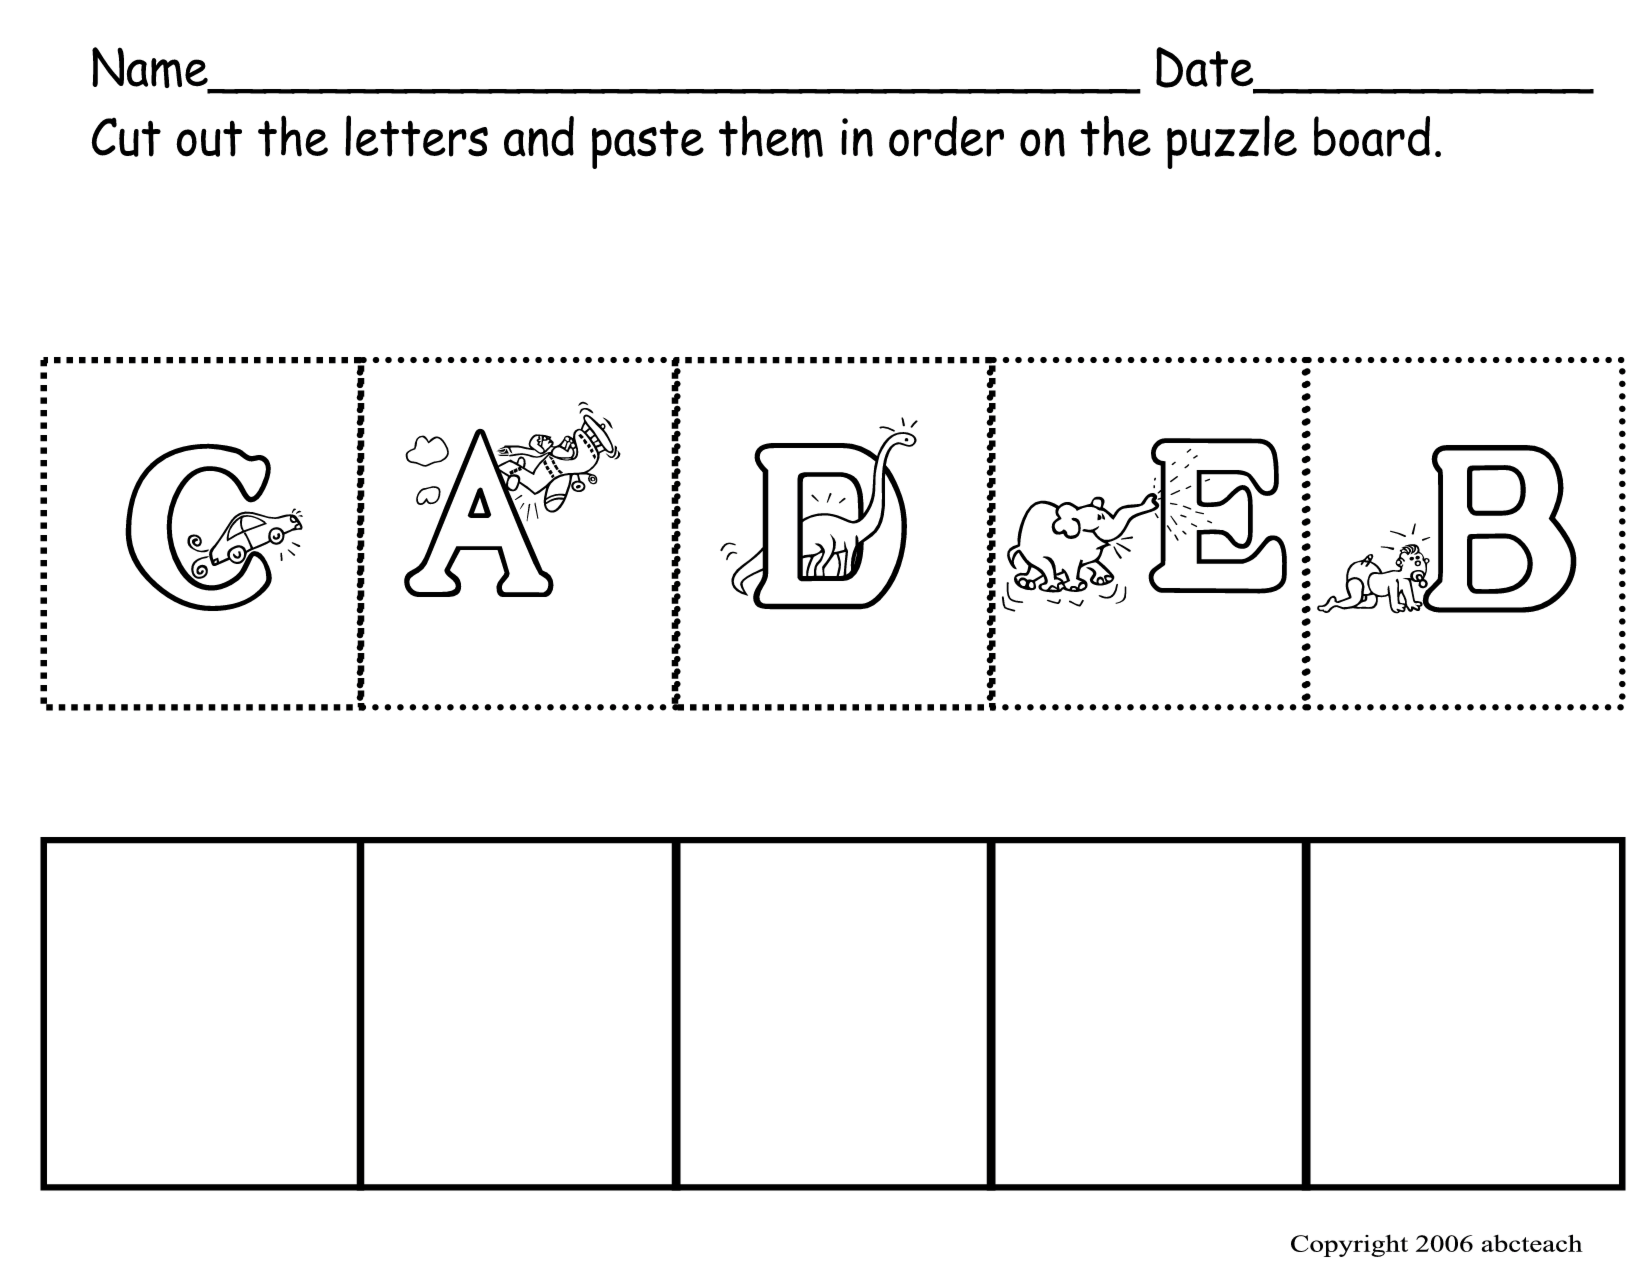 medium resolution of Abc Preschool Worksheets - PDF - PDF   Abc worksheets